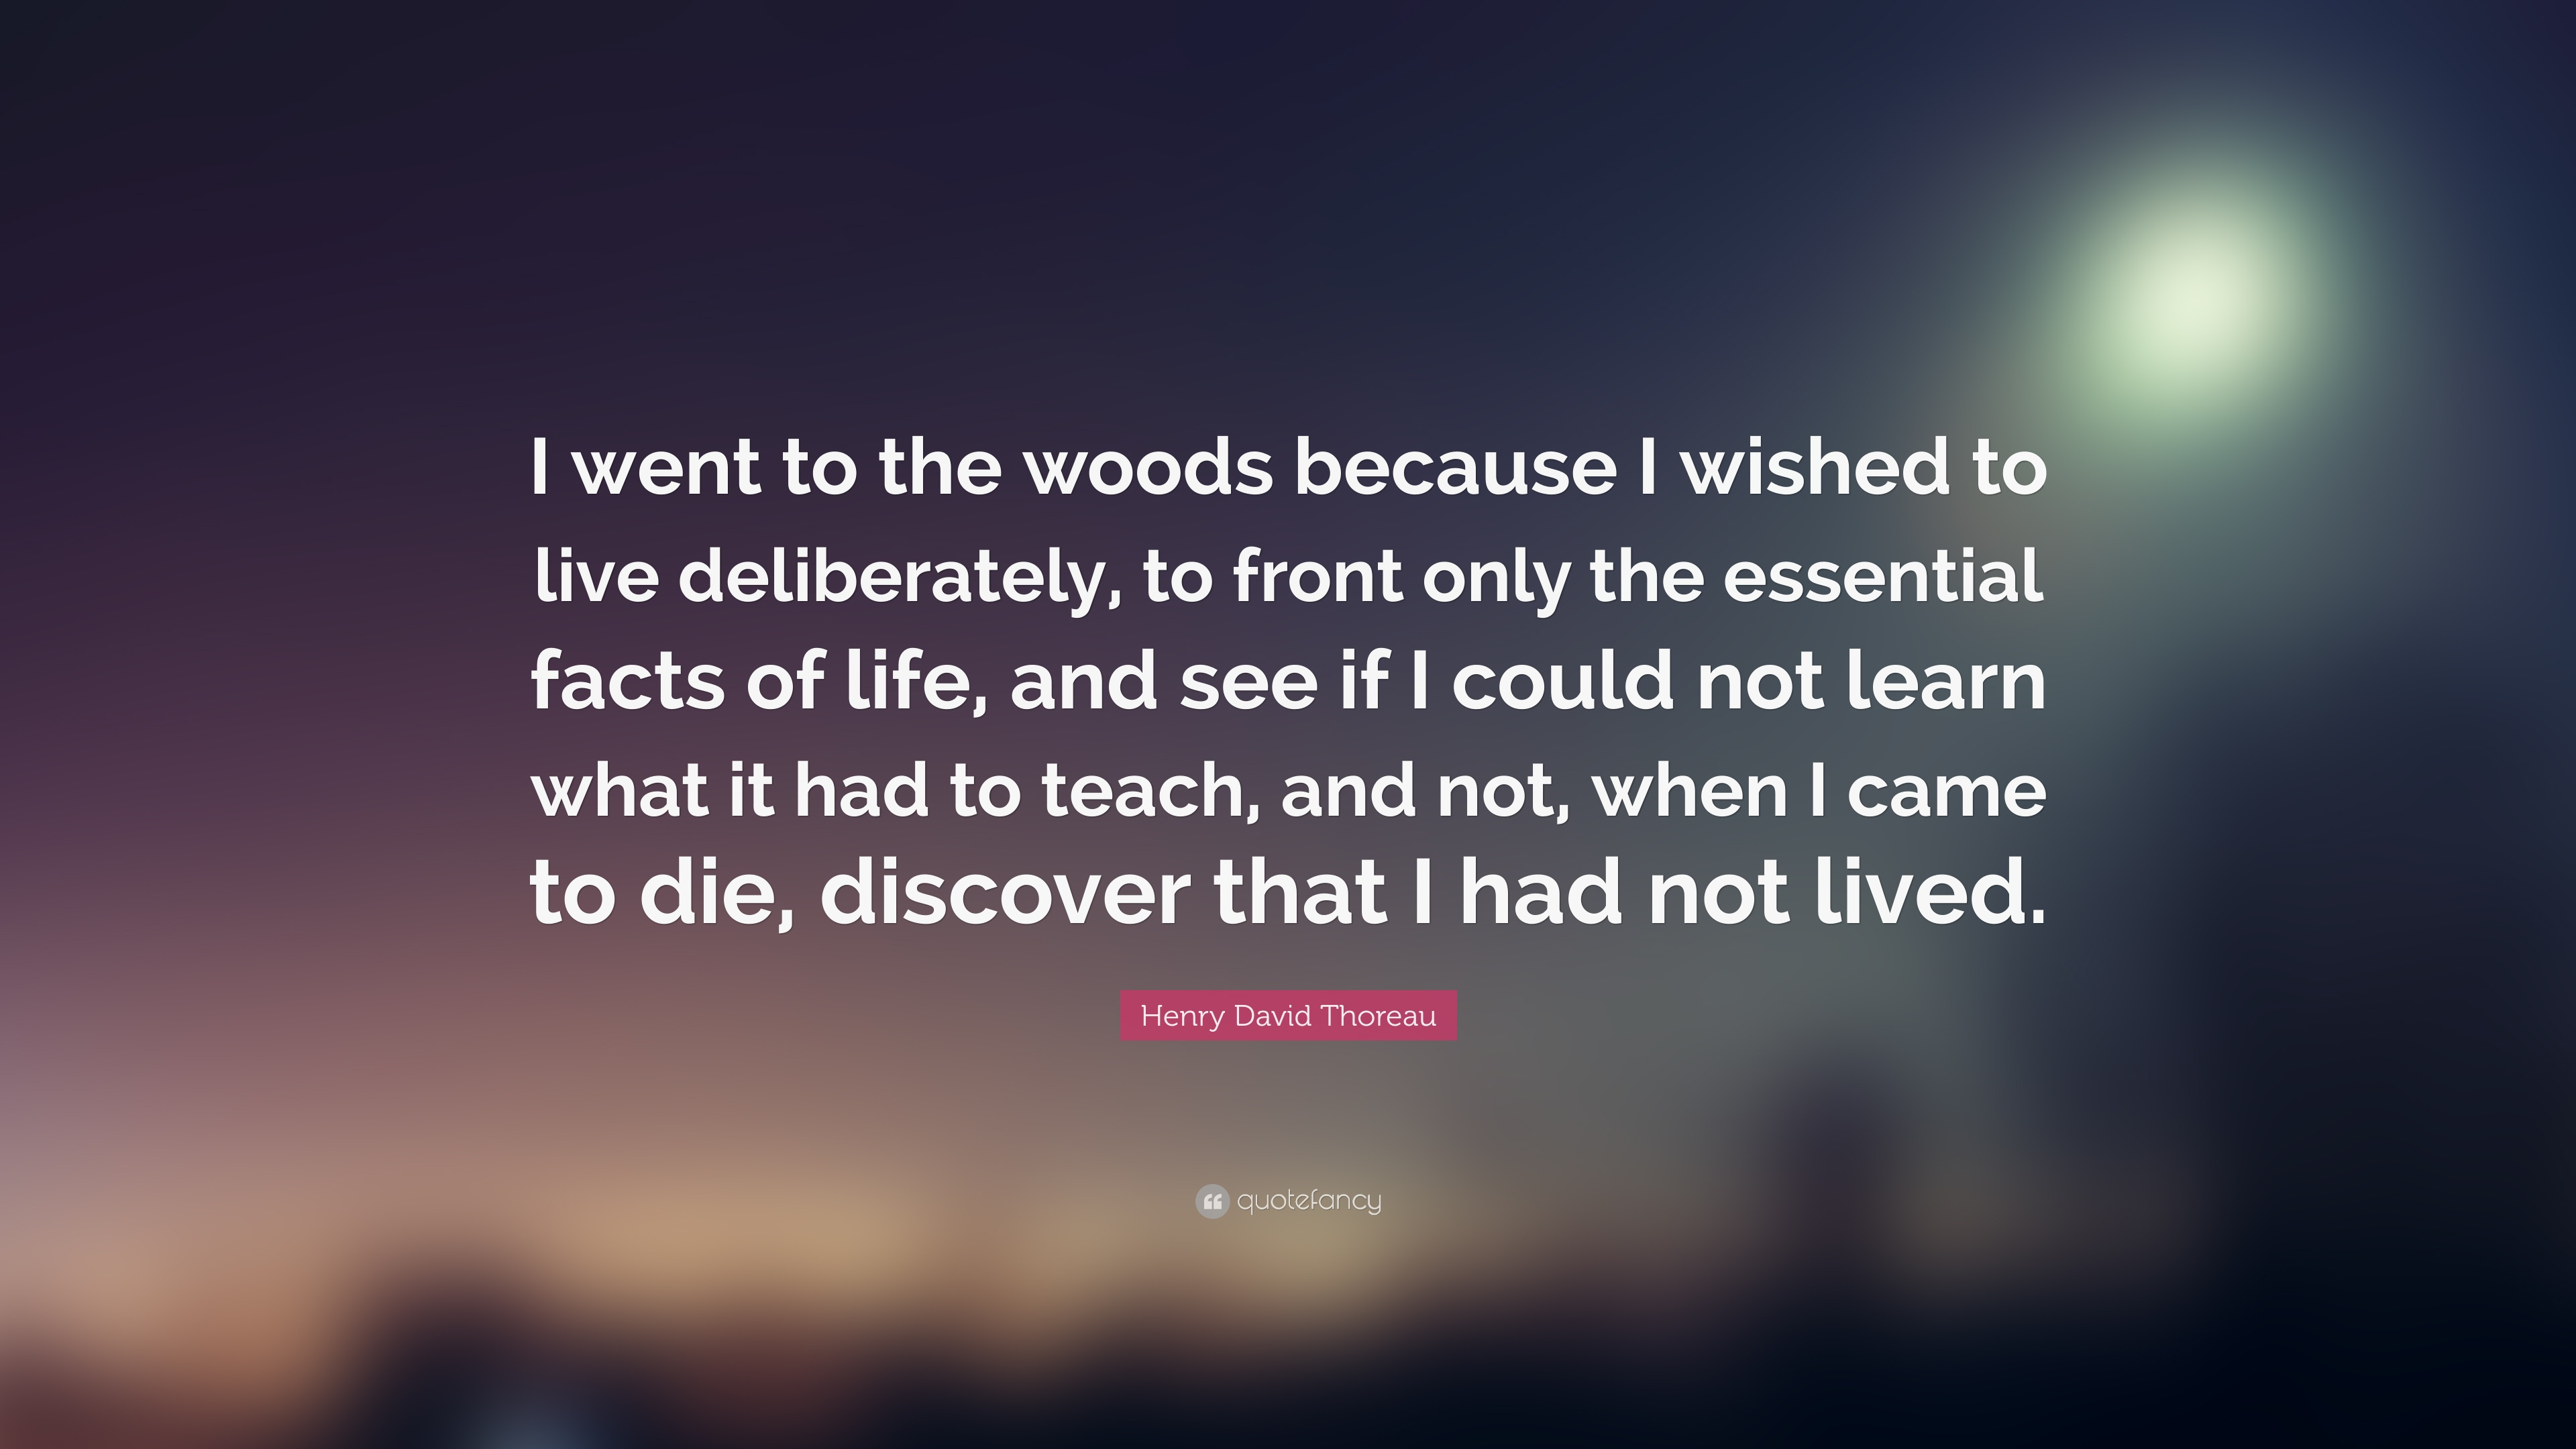 Henry David Thoreau Wallpaper Quote Henry David Thoreau Quote I Went To The Woods Because I